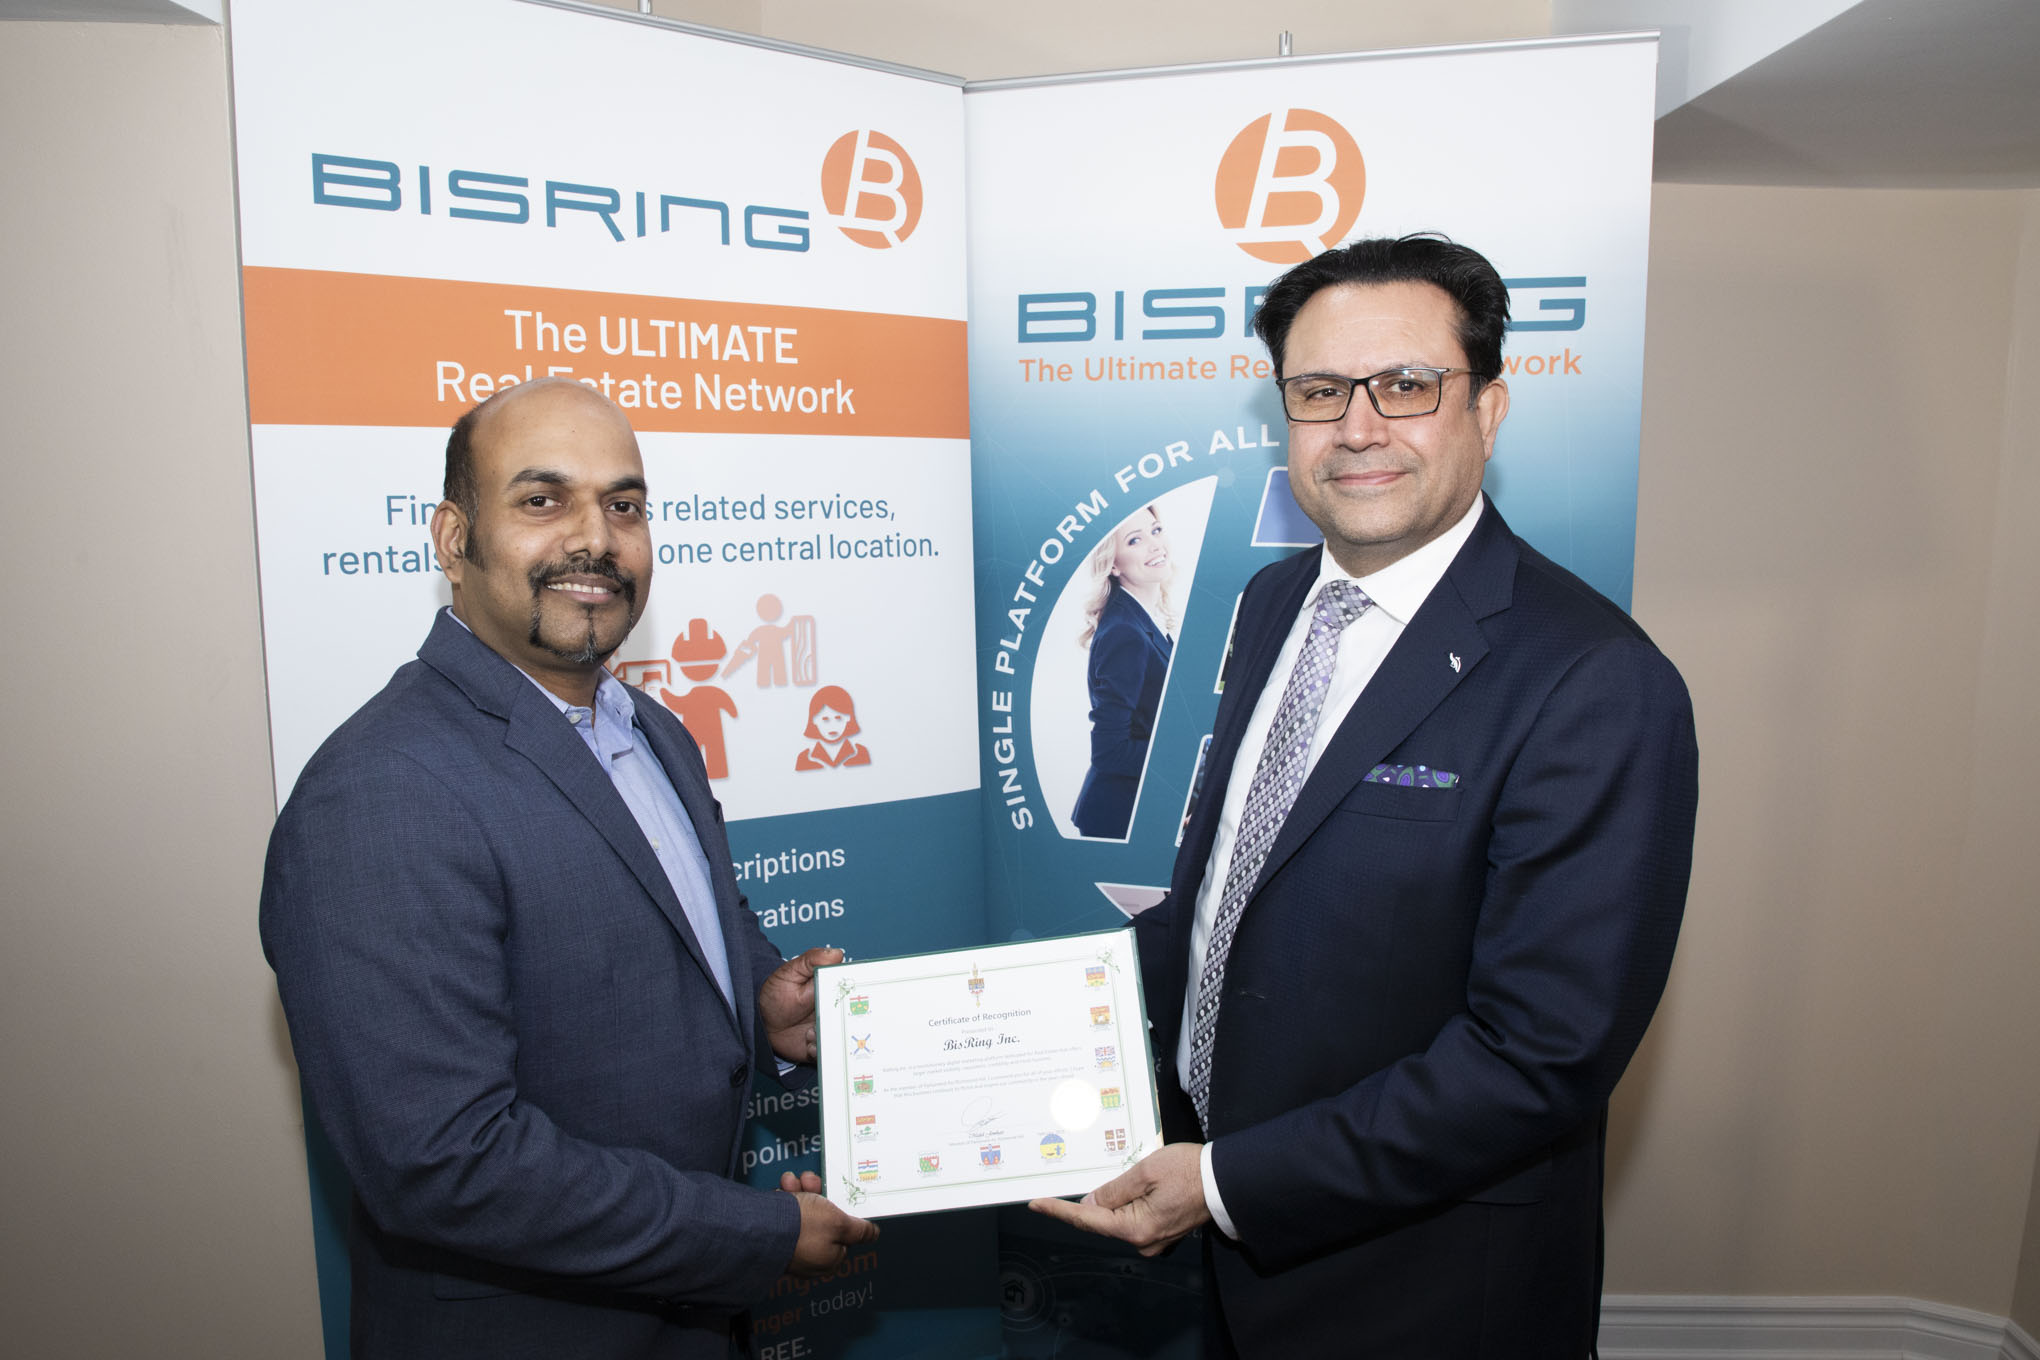 Richmond Hill MP Majid Jowhari's visit to the BisRing office